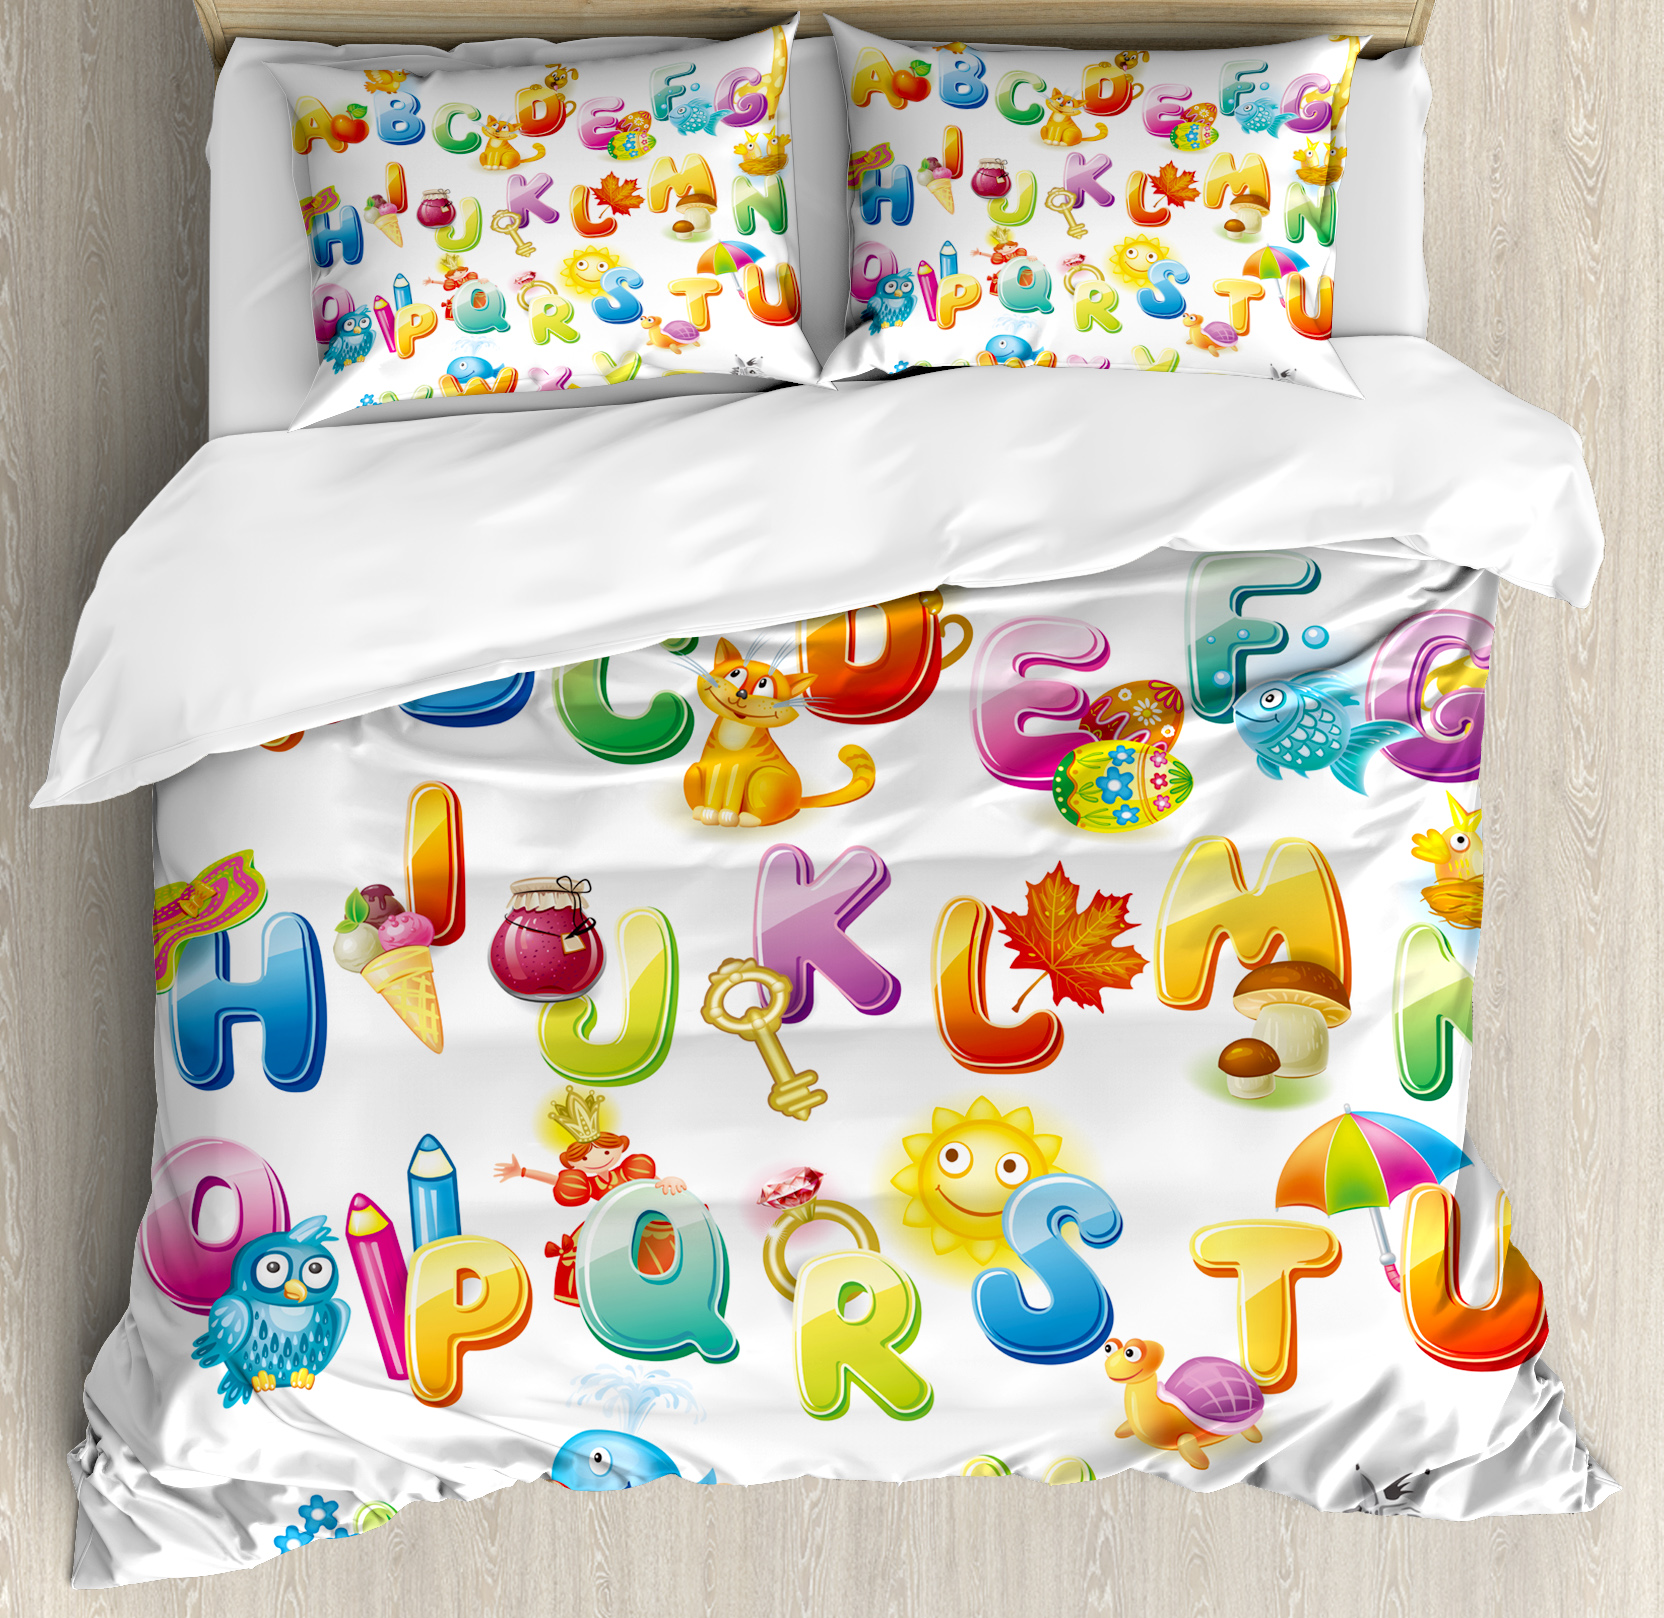 Educational King Size Duvet Cover Set, Cheerful Cartoon Fun Alphabet Design for Kids Cute... by Kozmos